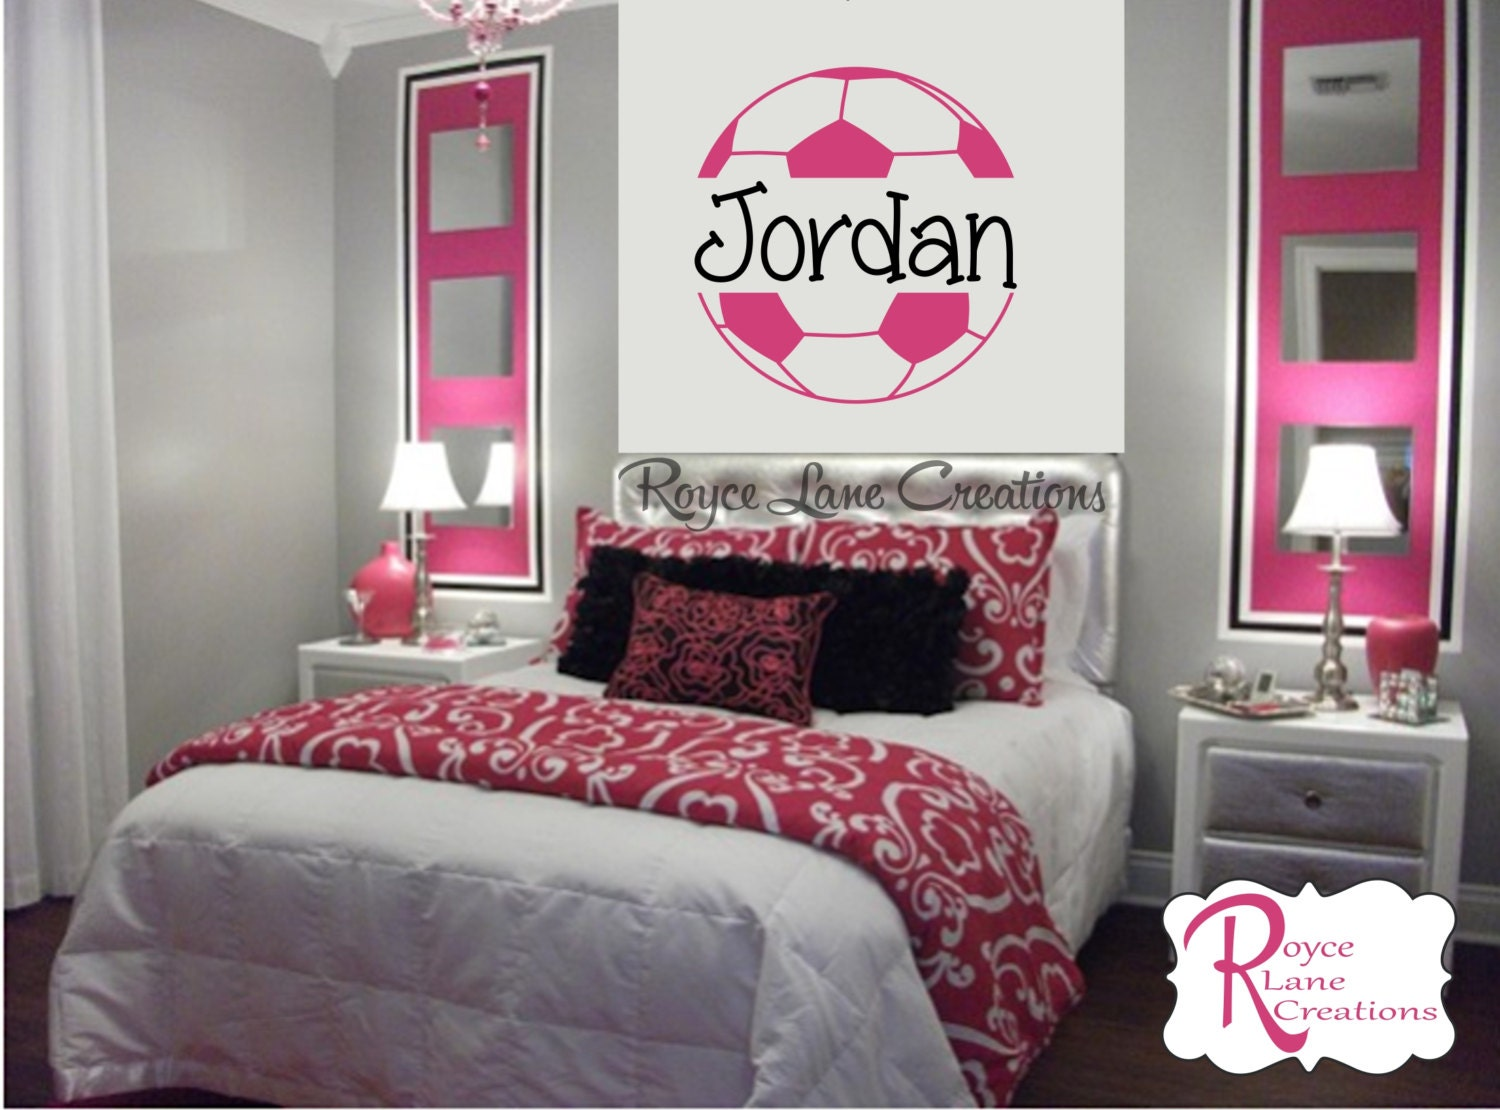 Soccer ball soccer wall decal b4 for girls room teen girl for Teen girl room decor